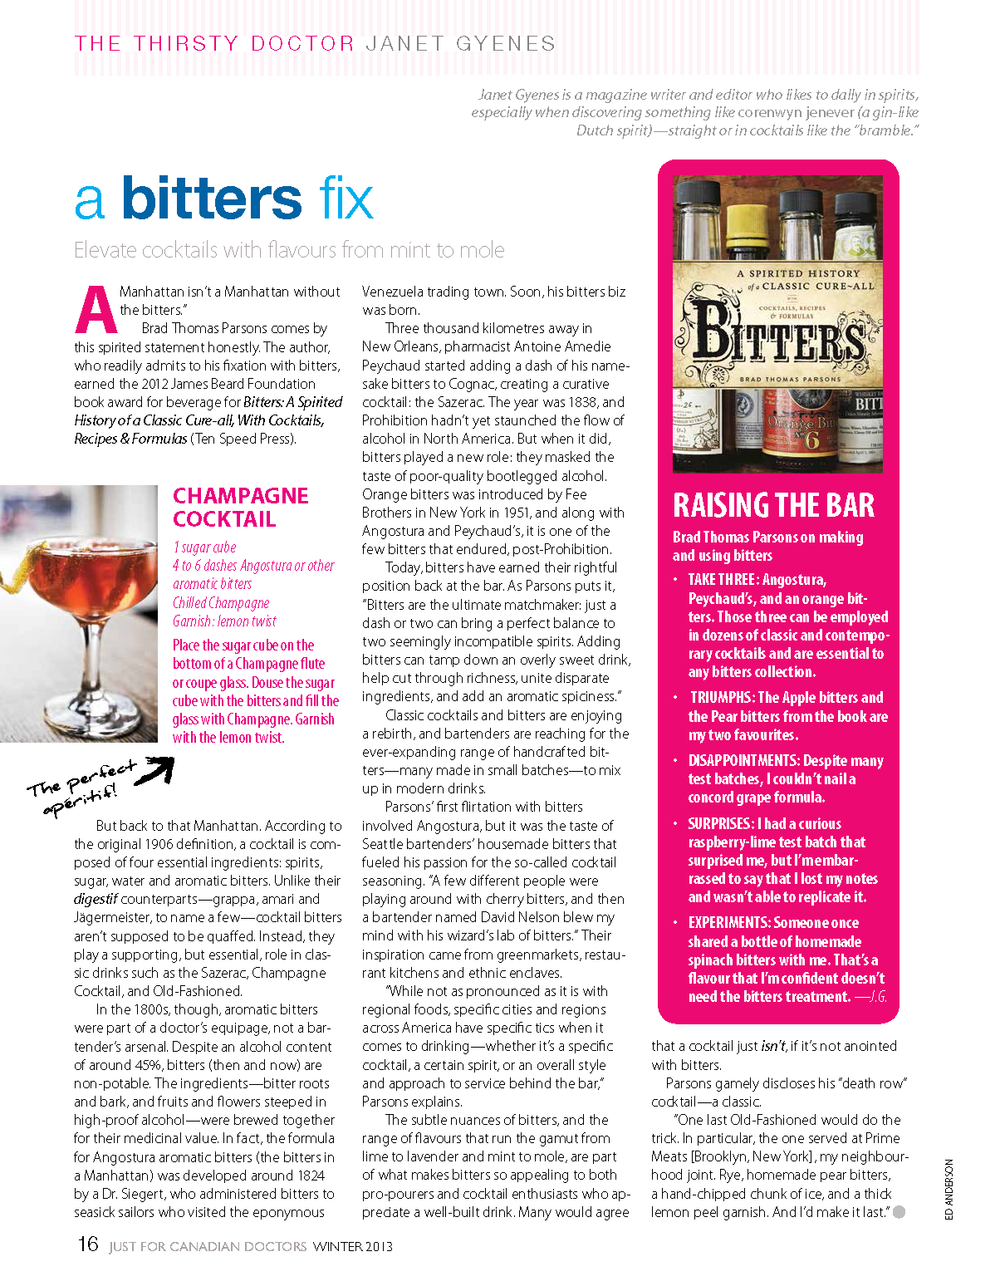 Bitters_Doctors_winter2013.png